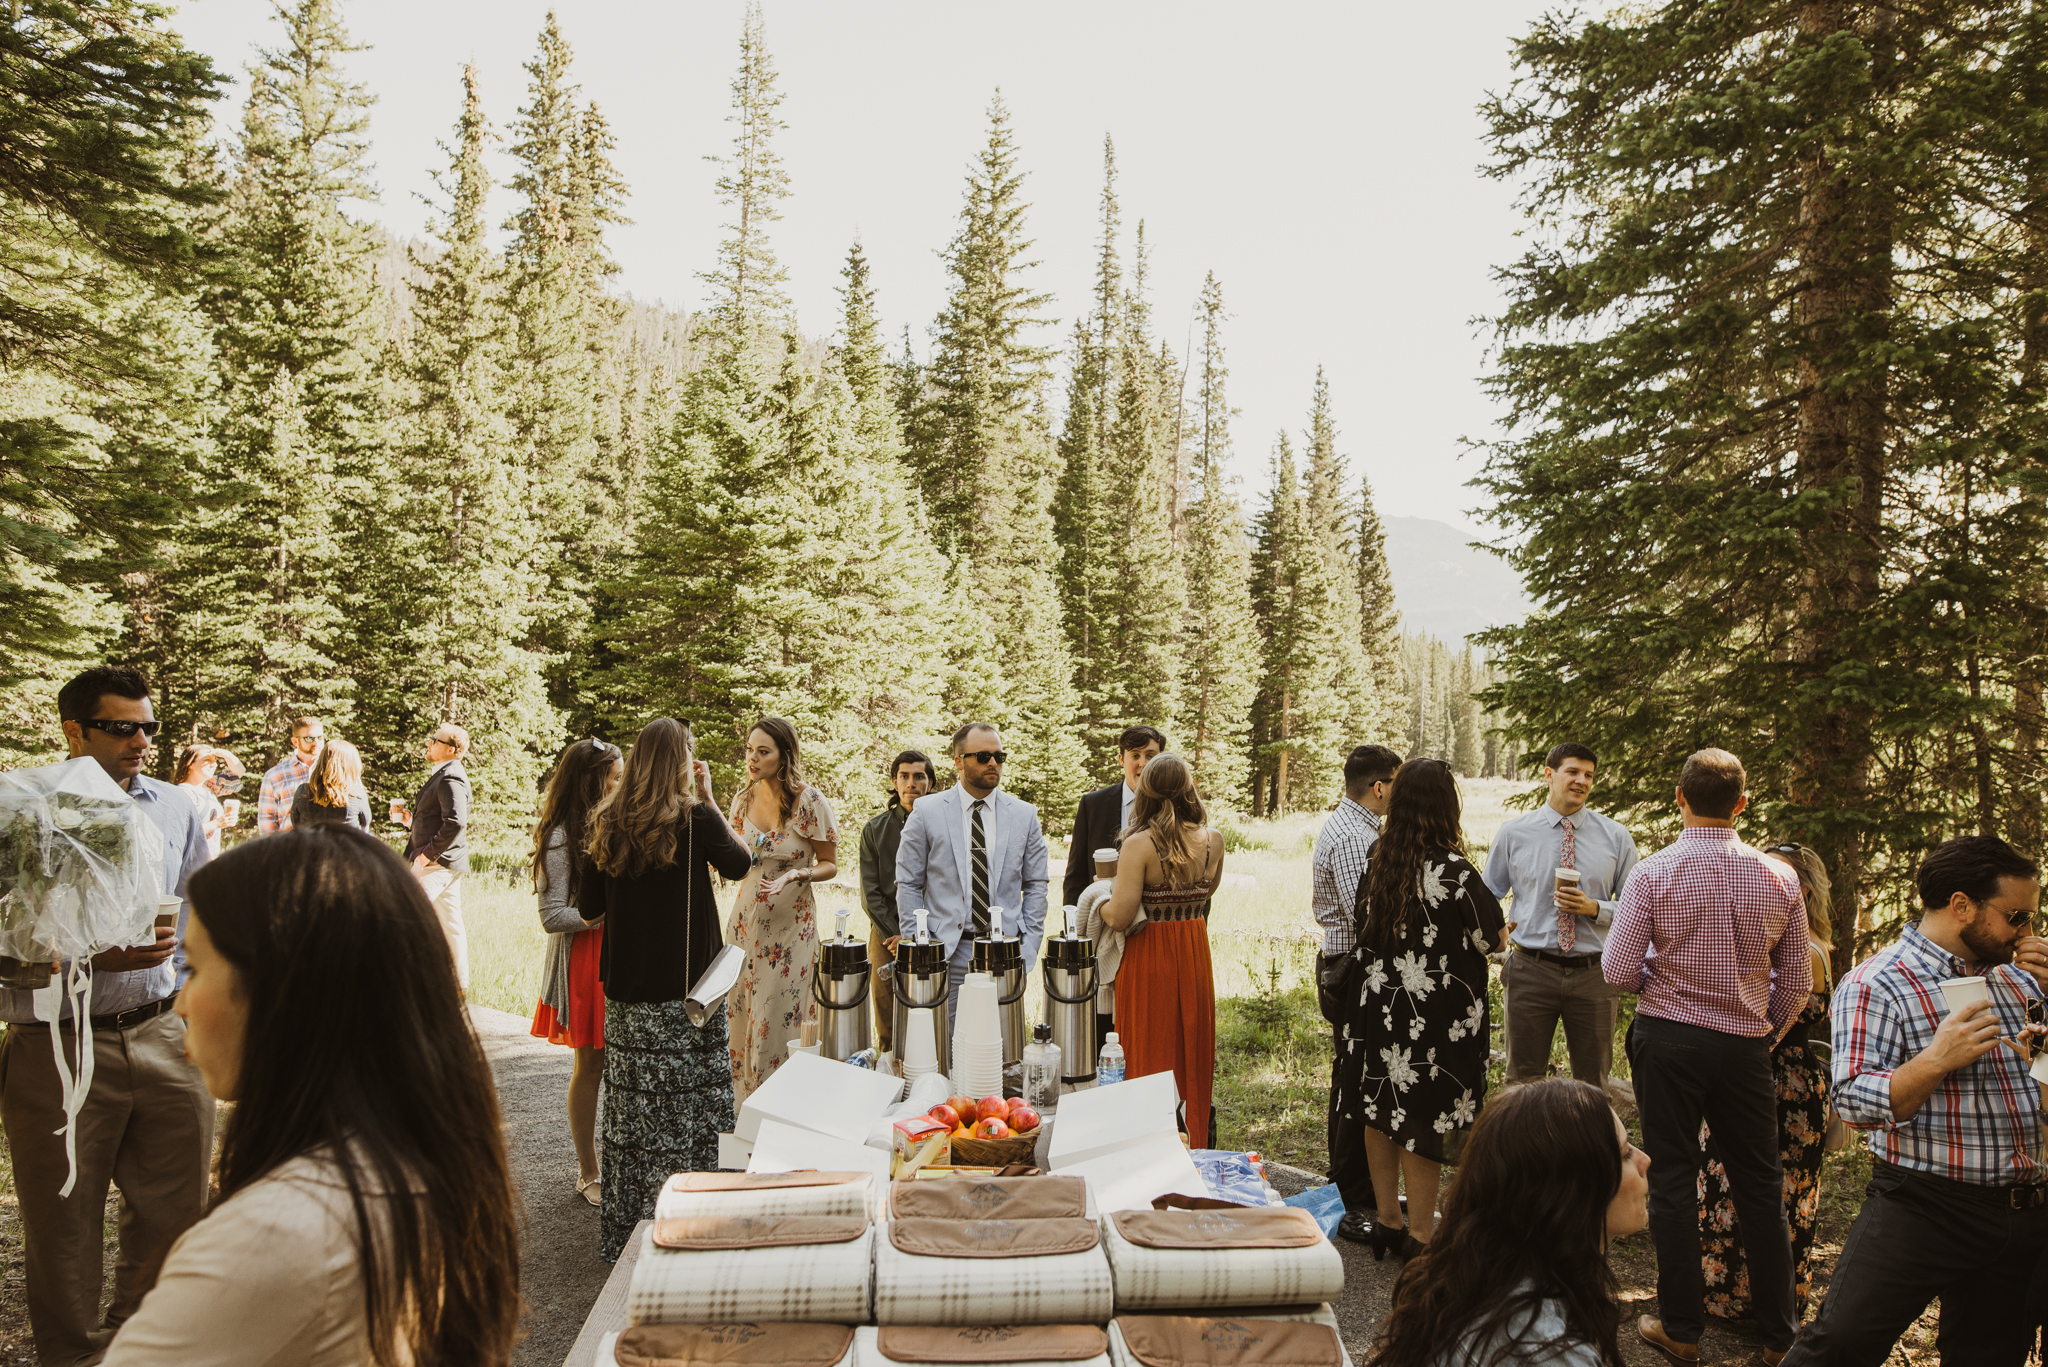 ©Isaiah + Taylor Photography - Estes National Park Adventure Elopement, Colorado Rockies-12.jpg